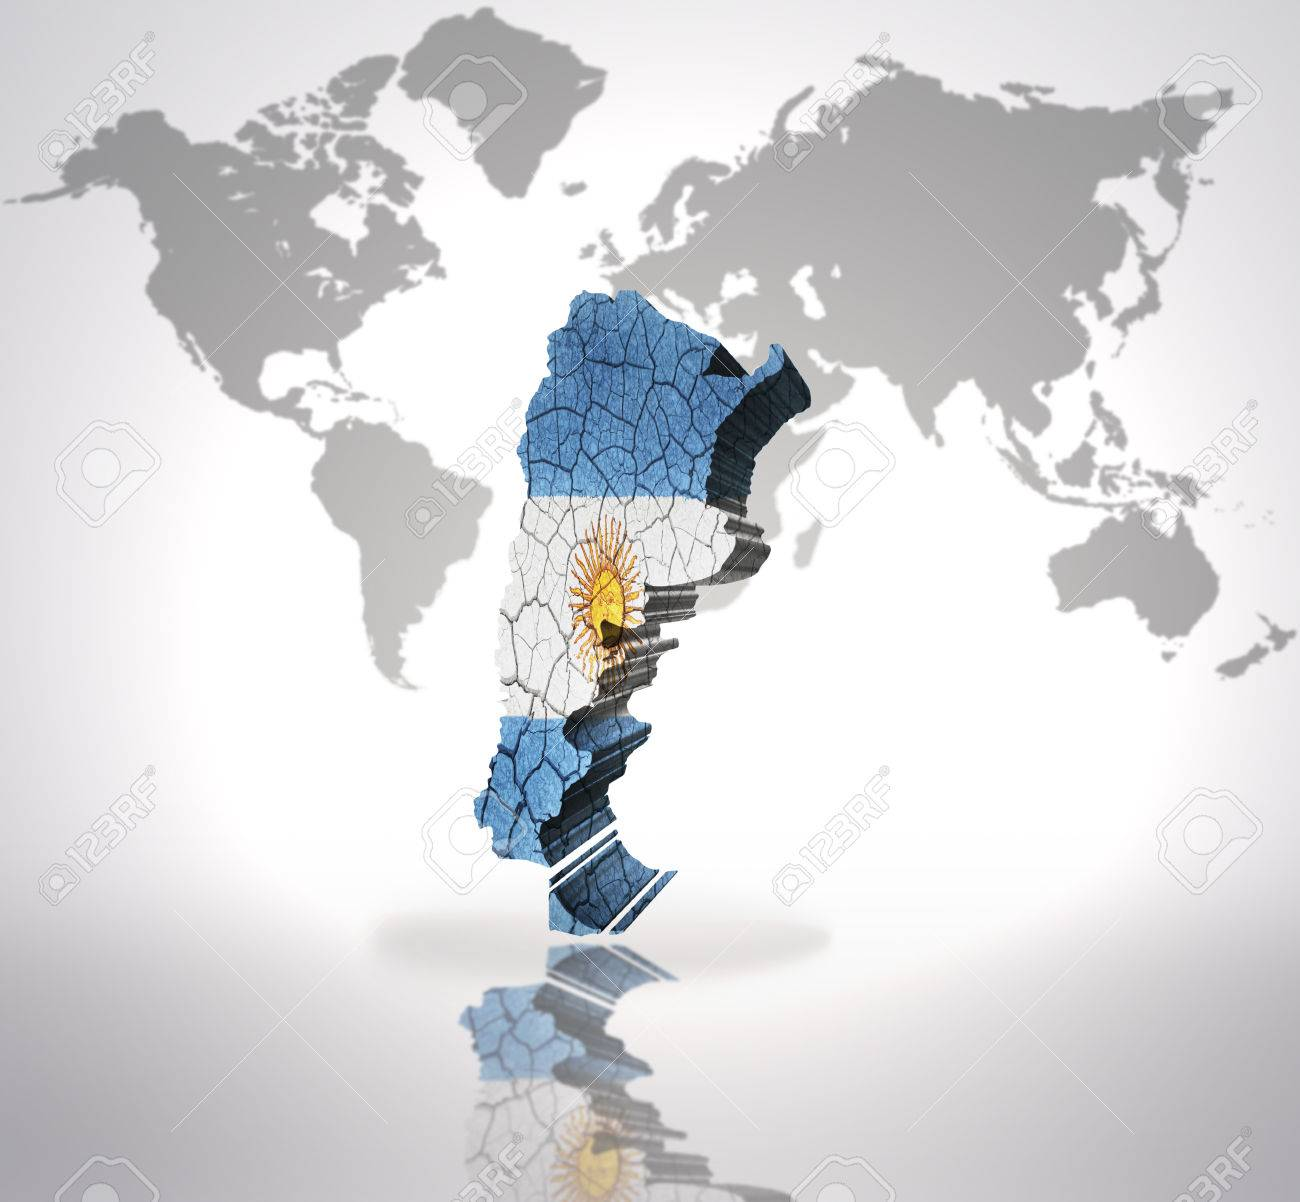 Map Of Argentina With Argentinean Flag On A World Map Background - Argentina map world